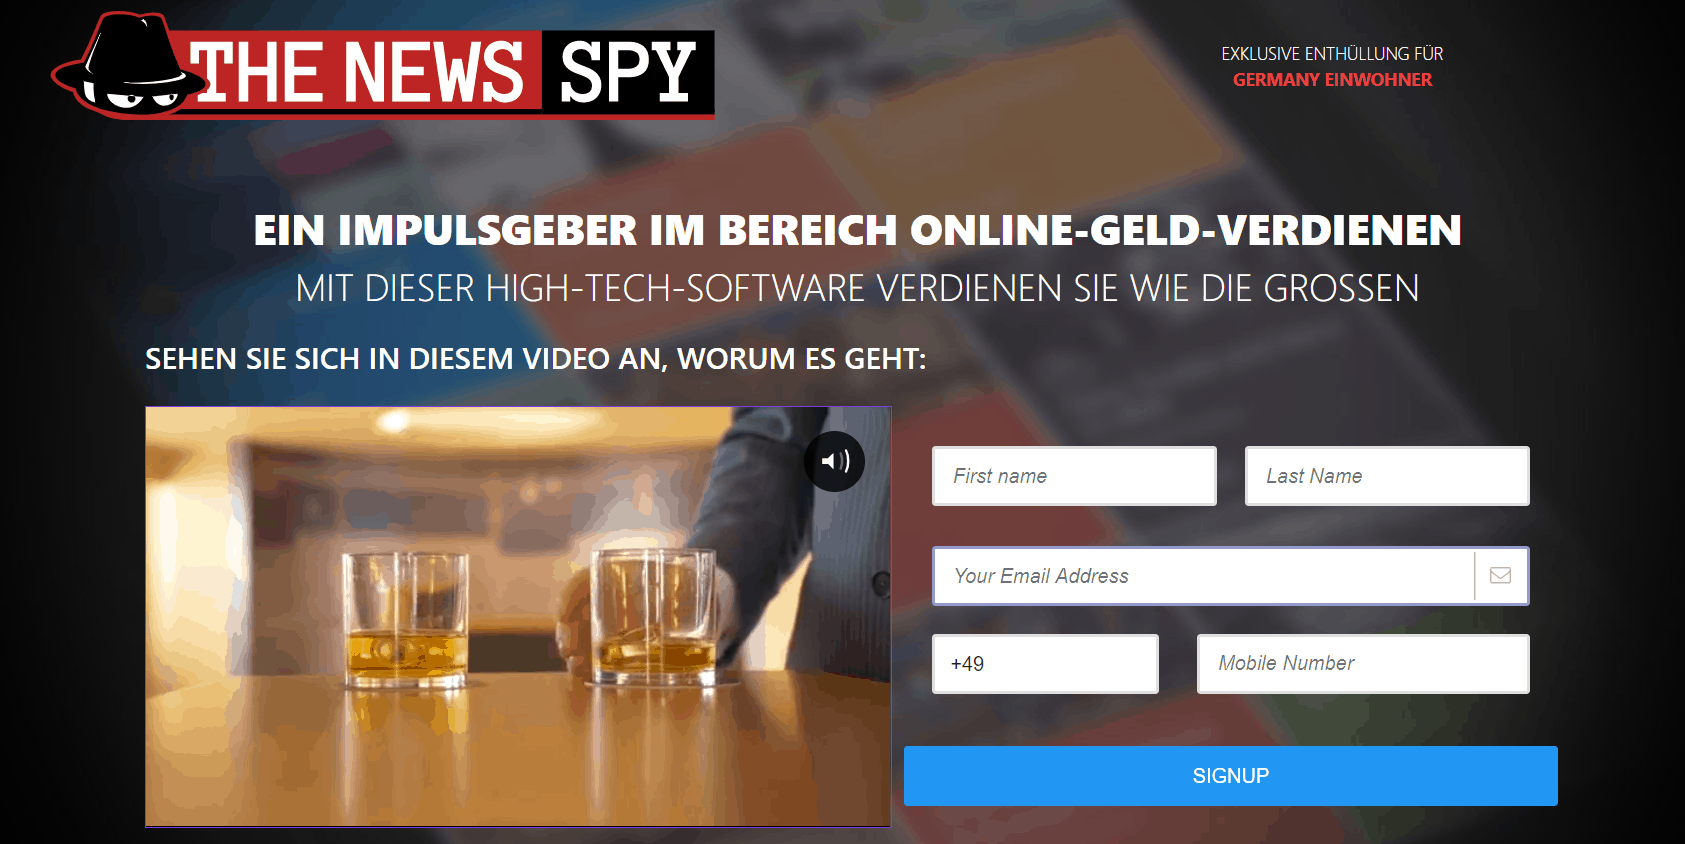 News spy german June 3, 2020